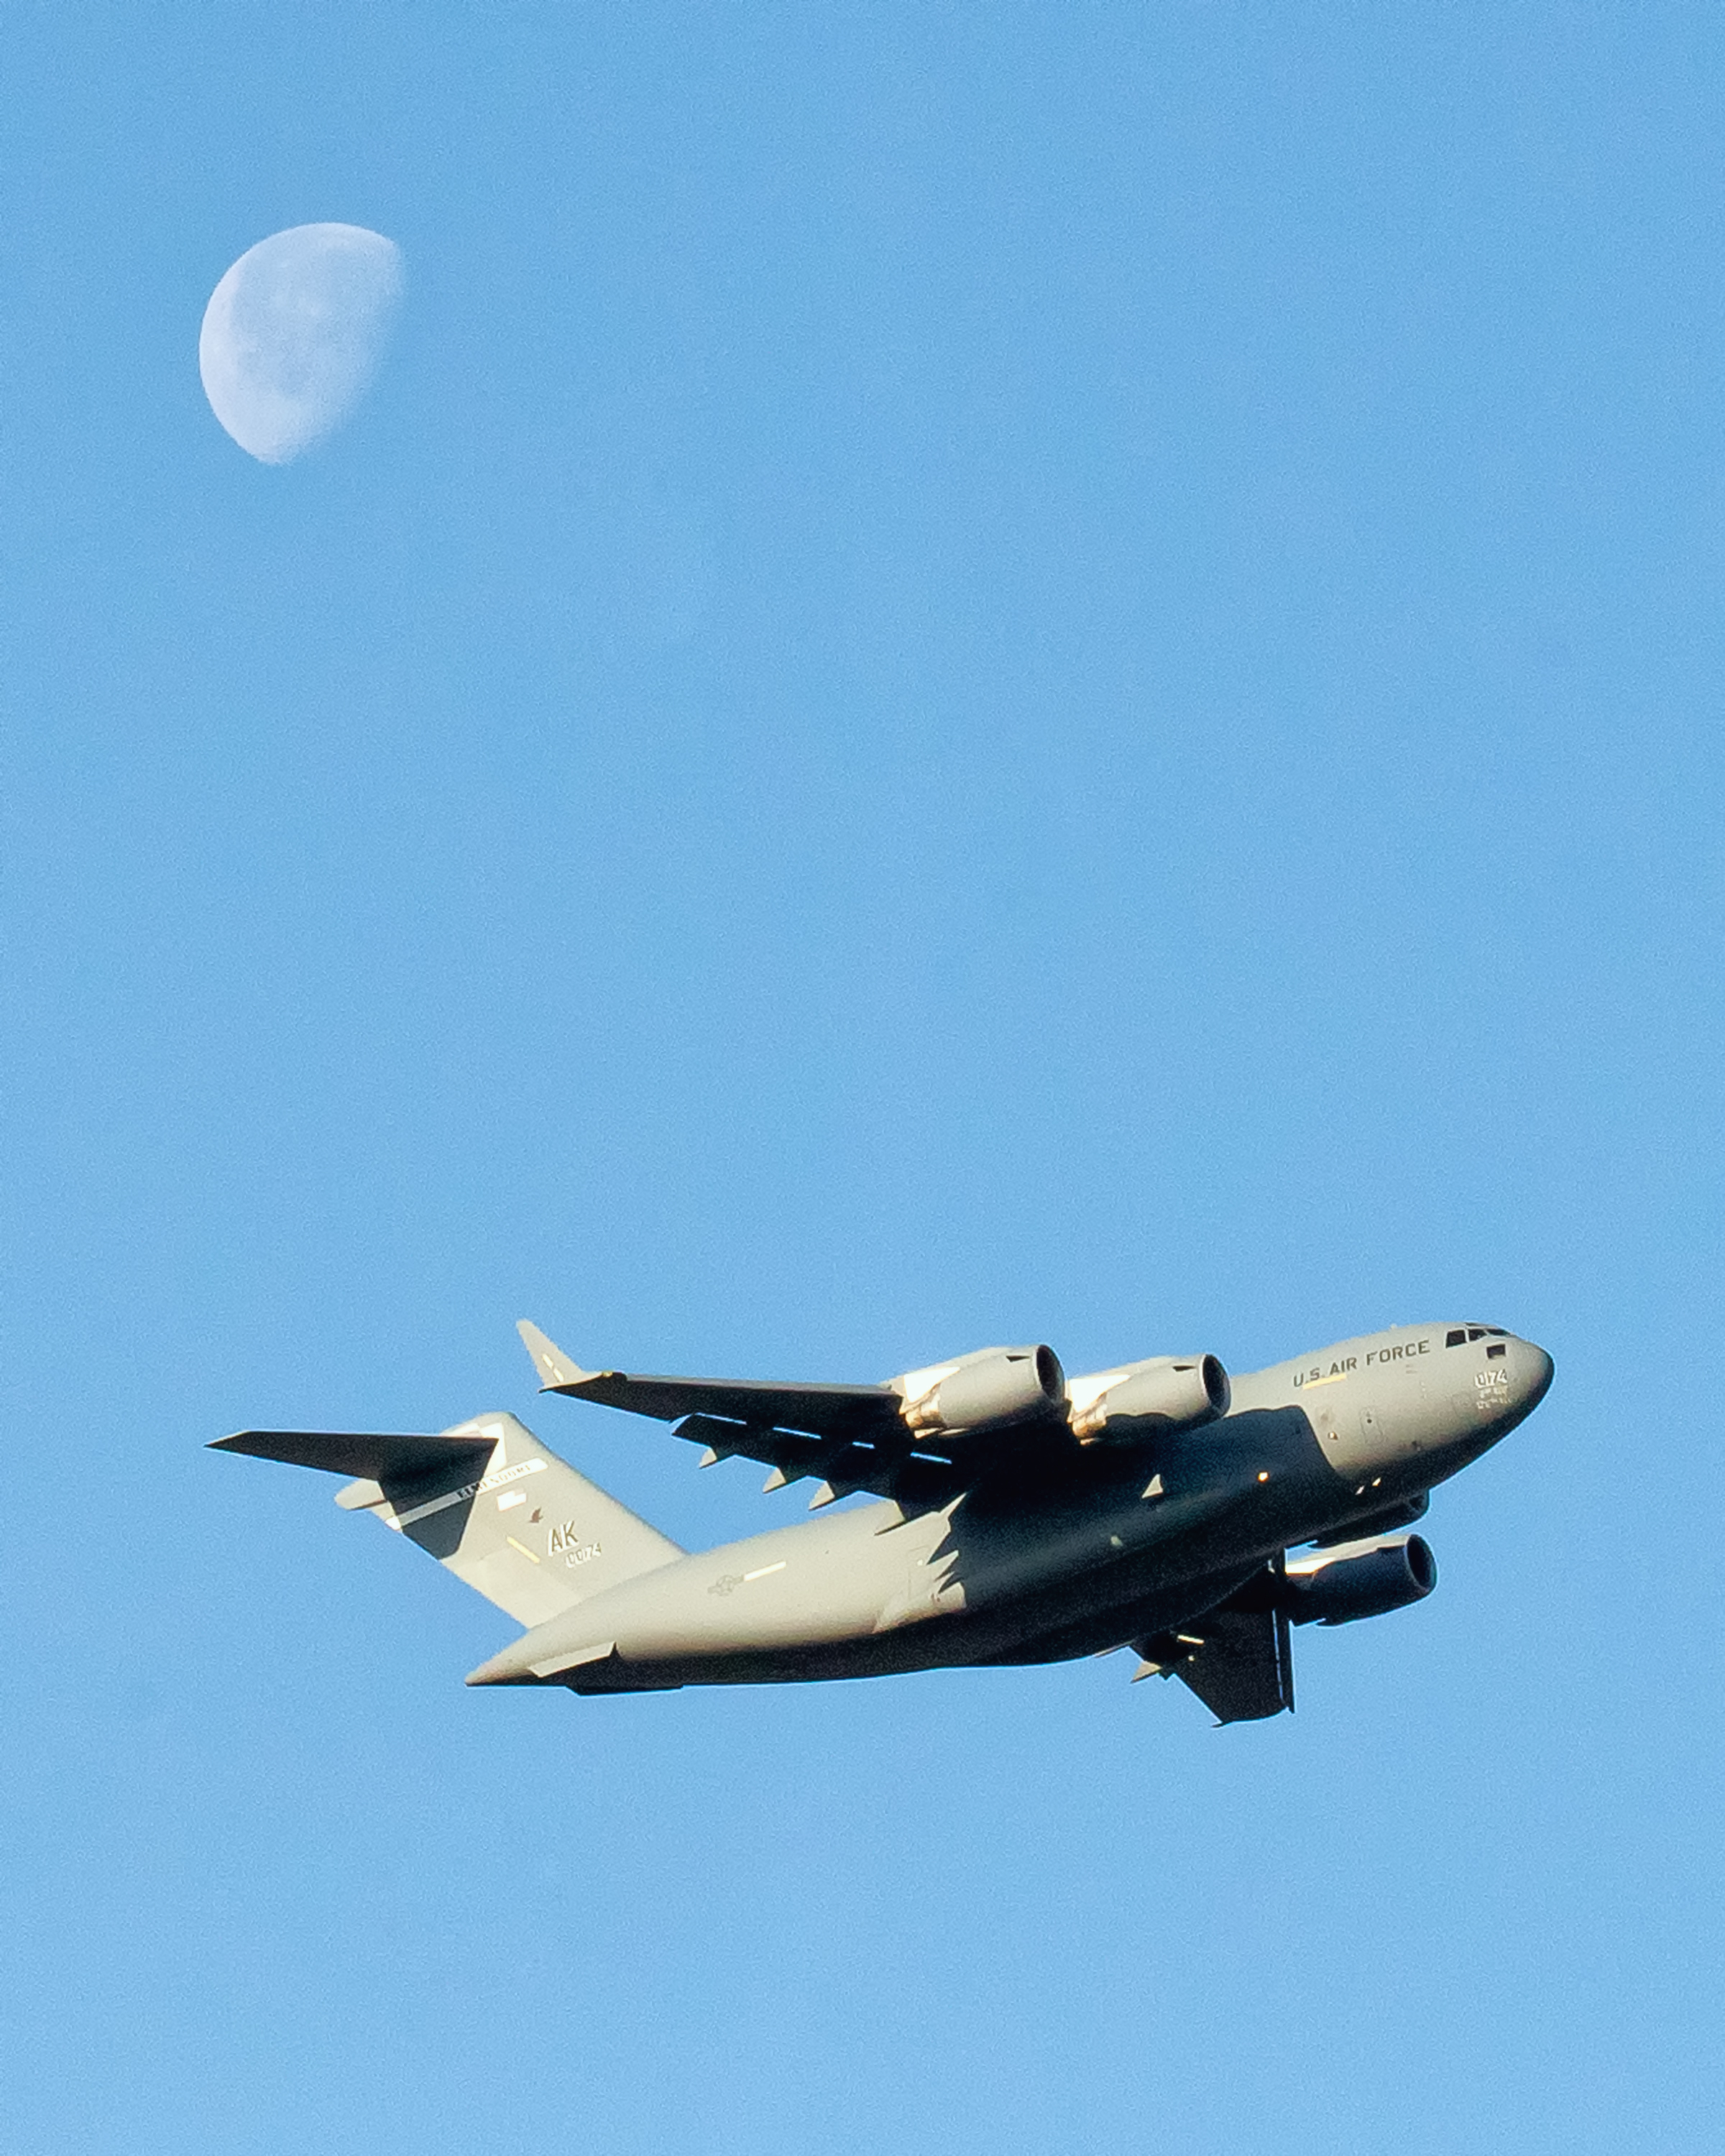 Moon and Machine: US Air Force C-17 Jet Creates Lunar Scene Over Japan